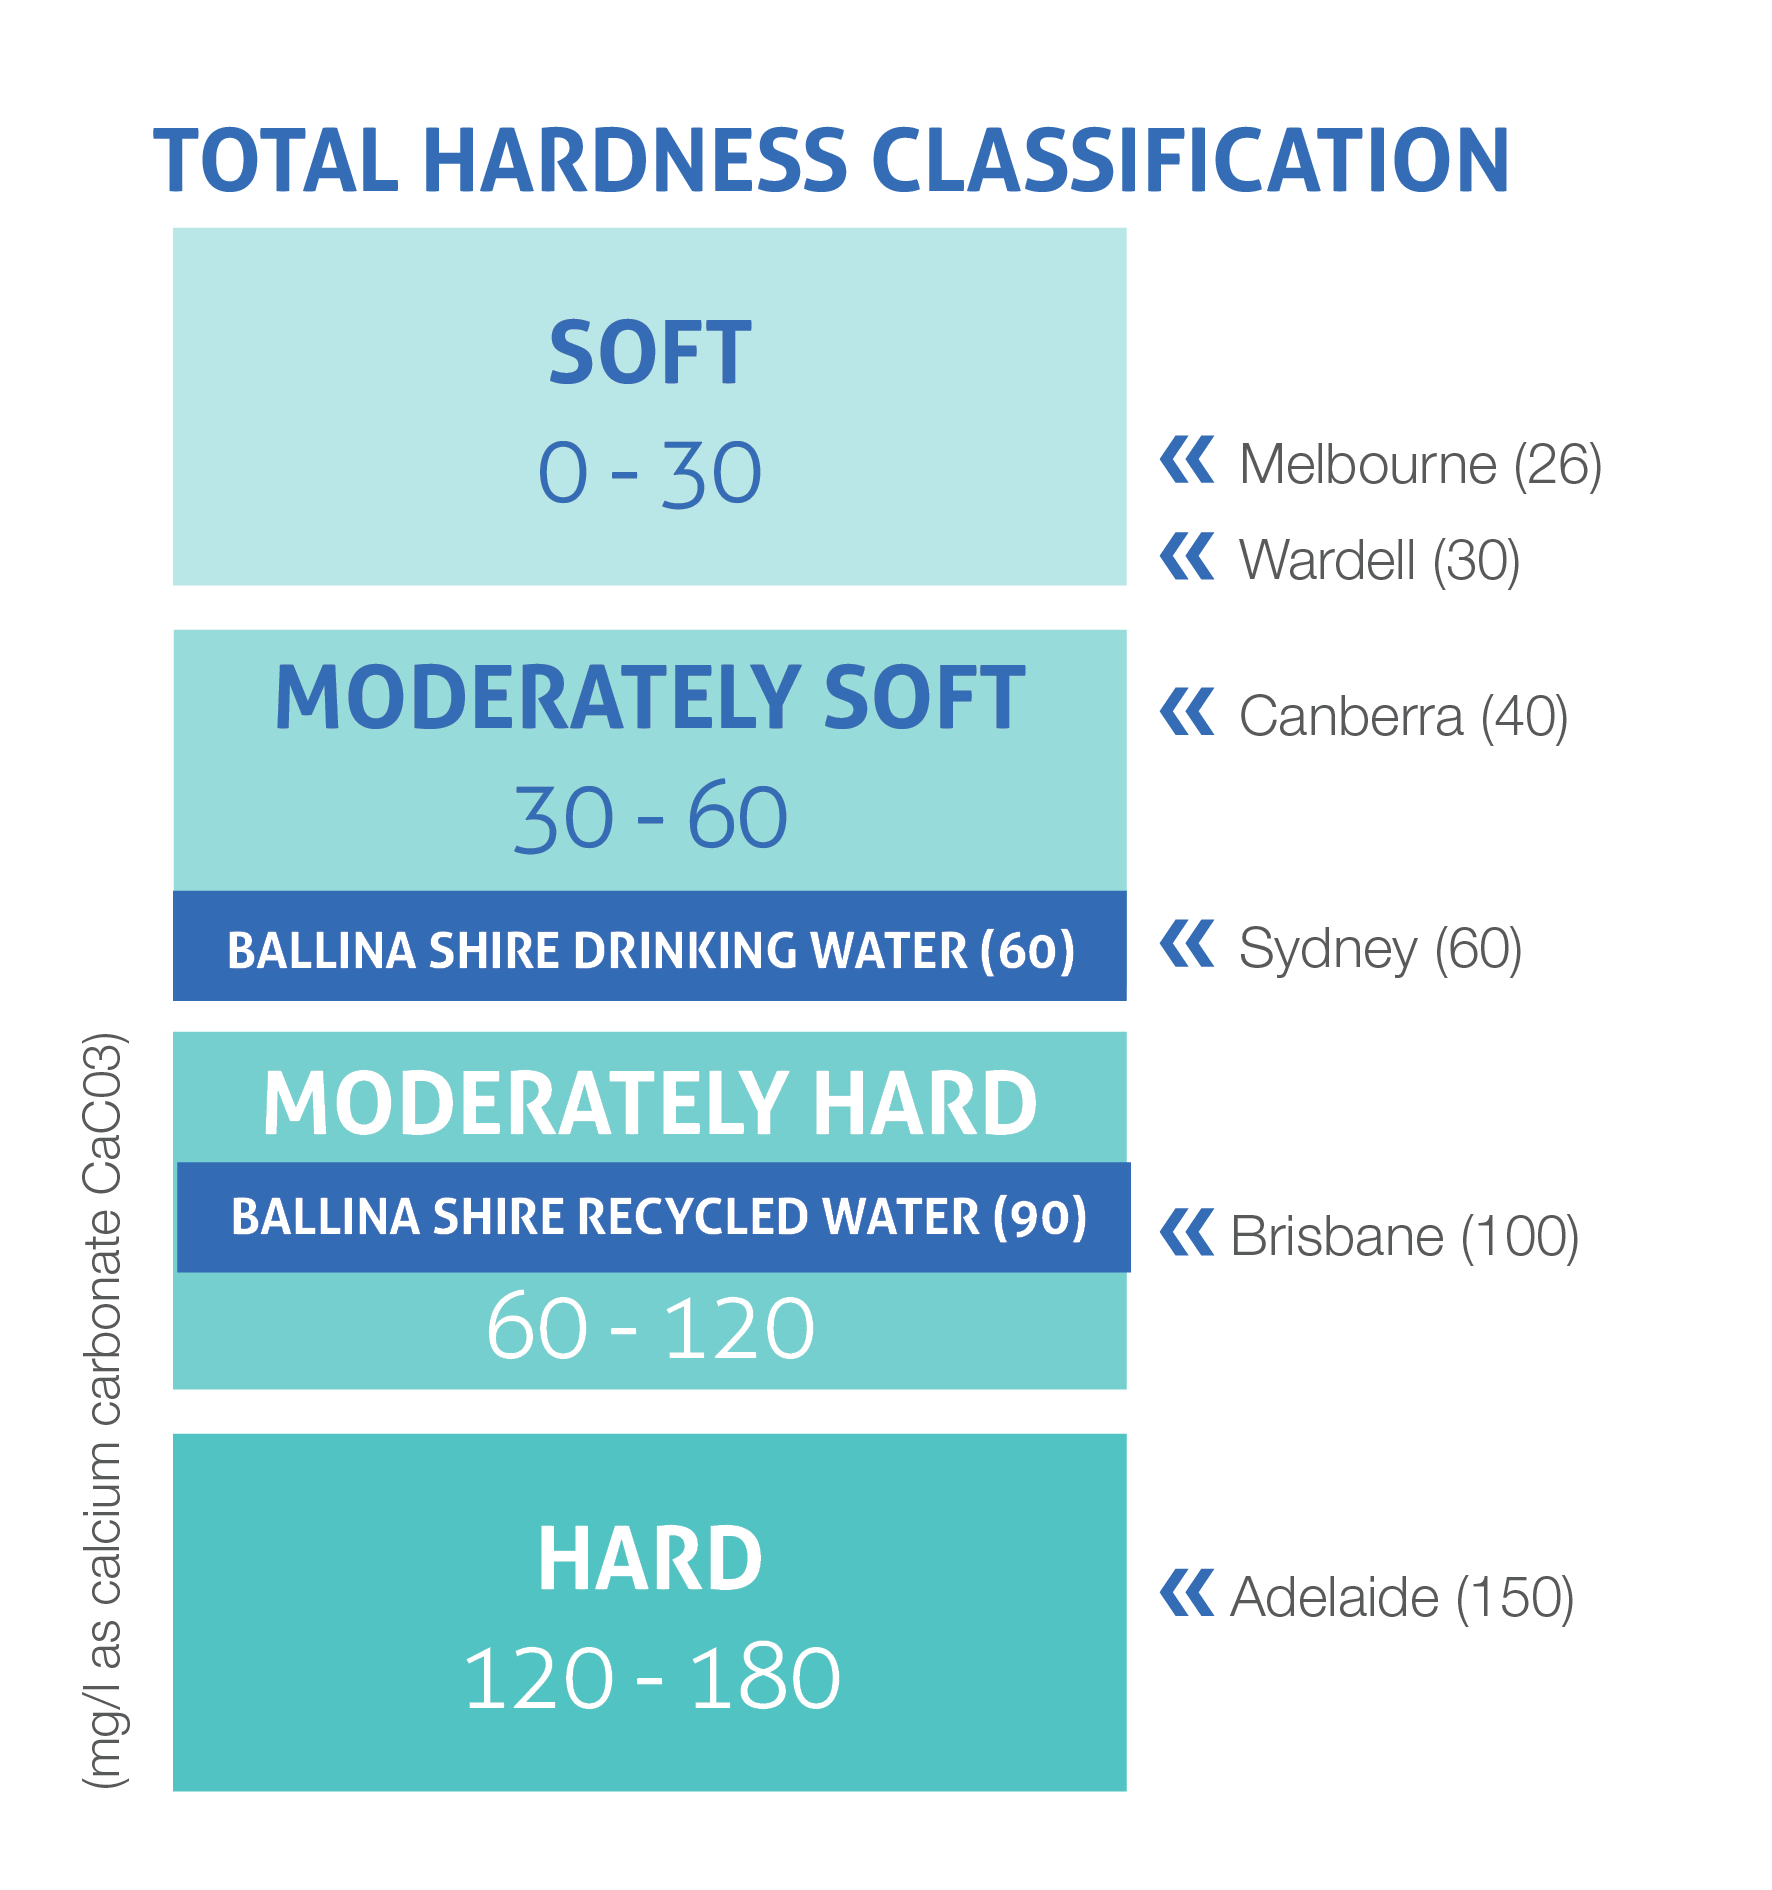 Water hardness classification image